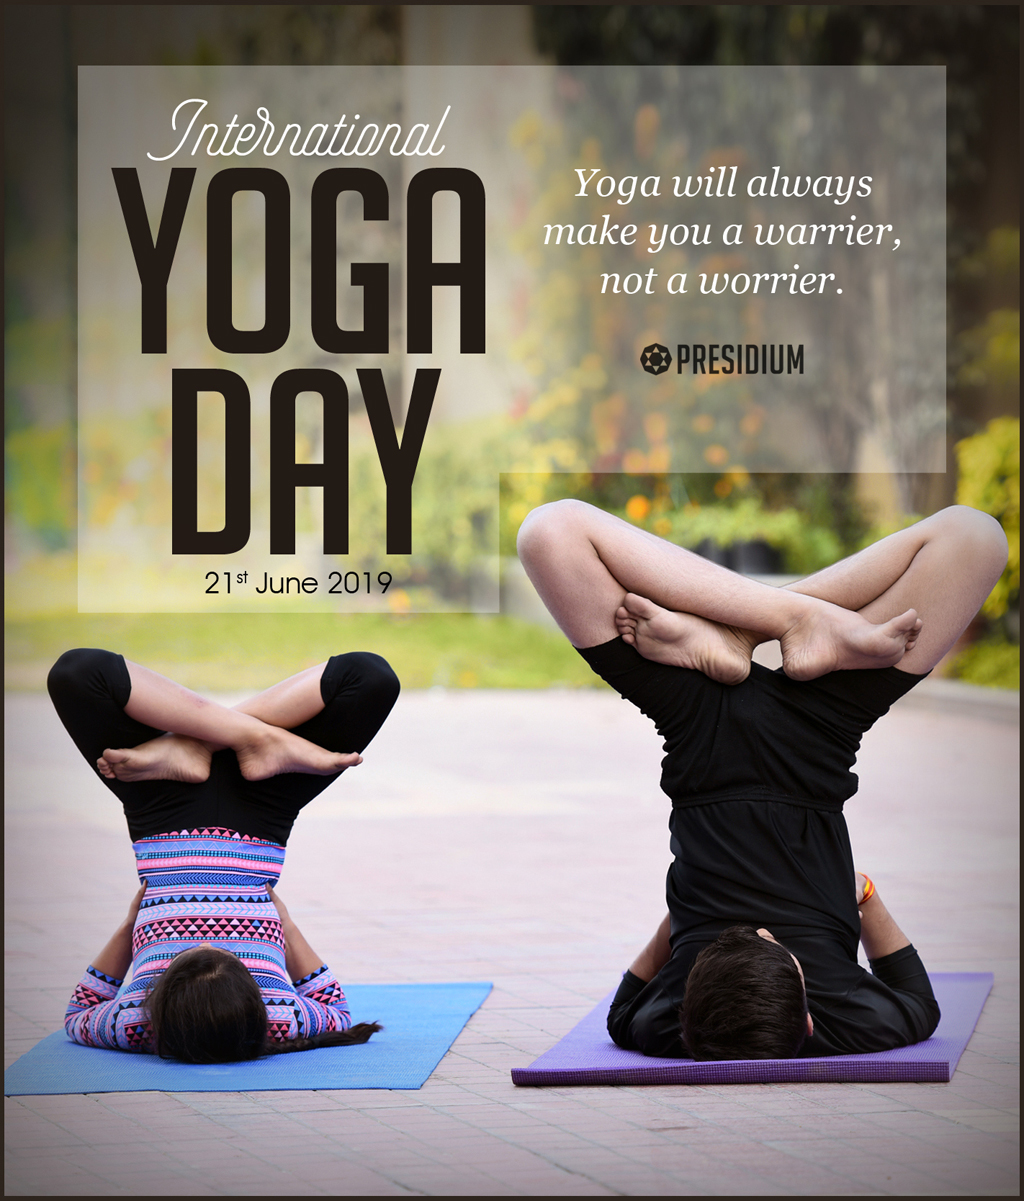 YOGA DAY 2019: YOGA IS A LIGHT, ONCE LIT, WILL NEVER DIM!